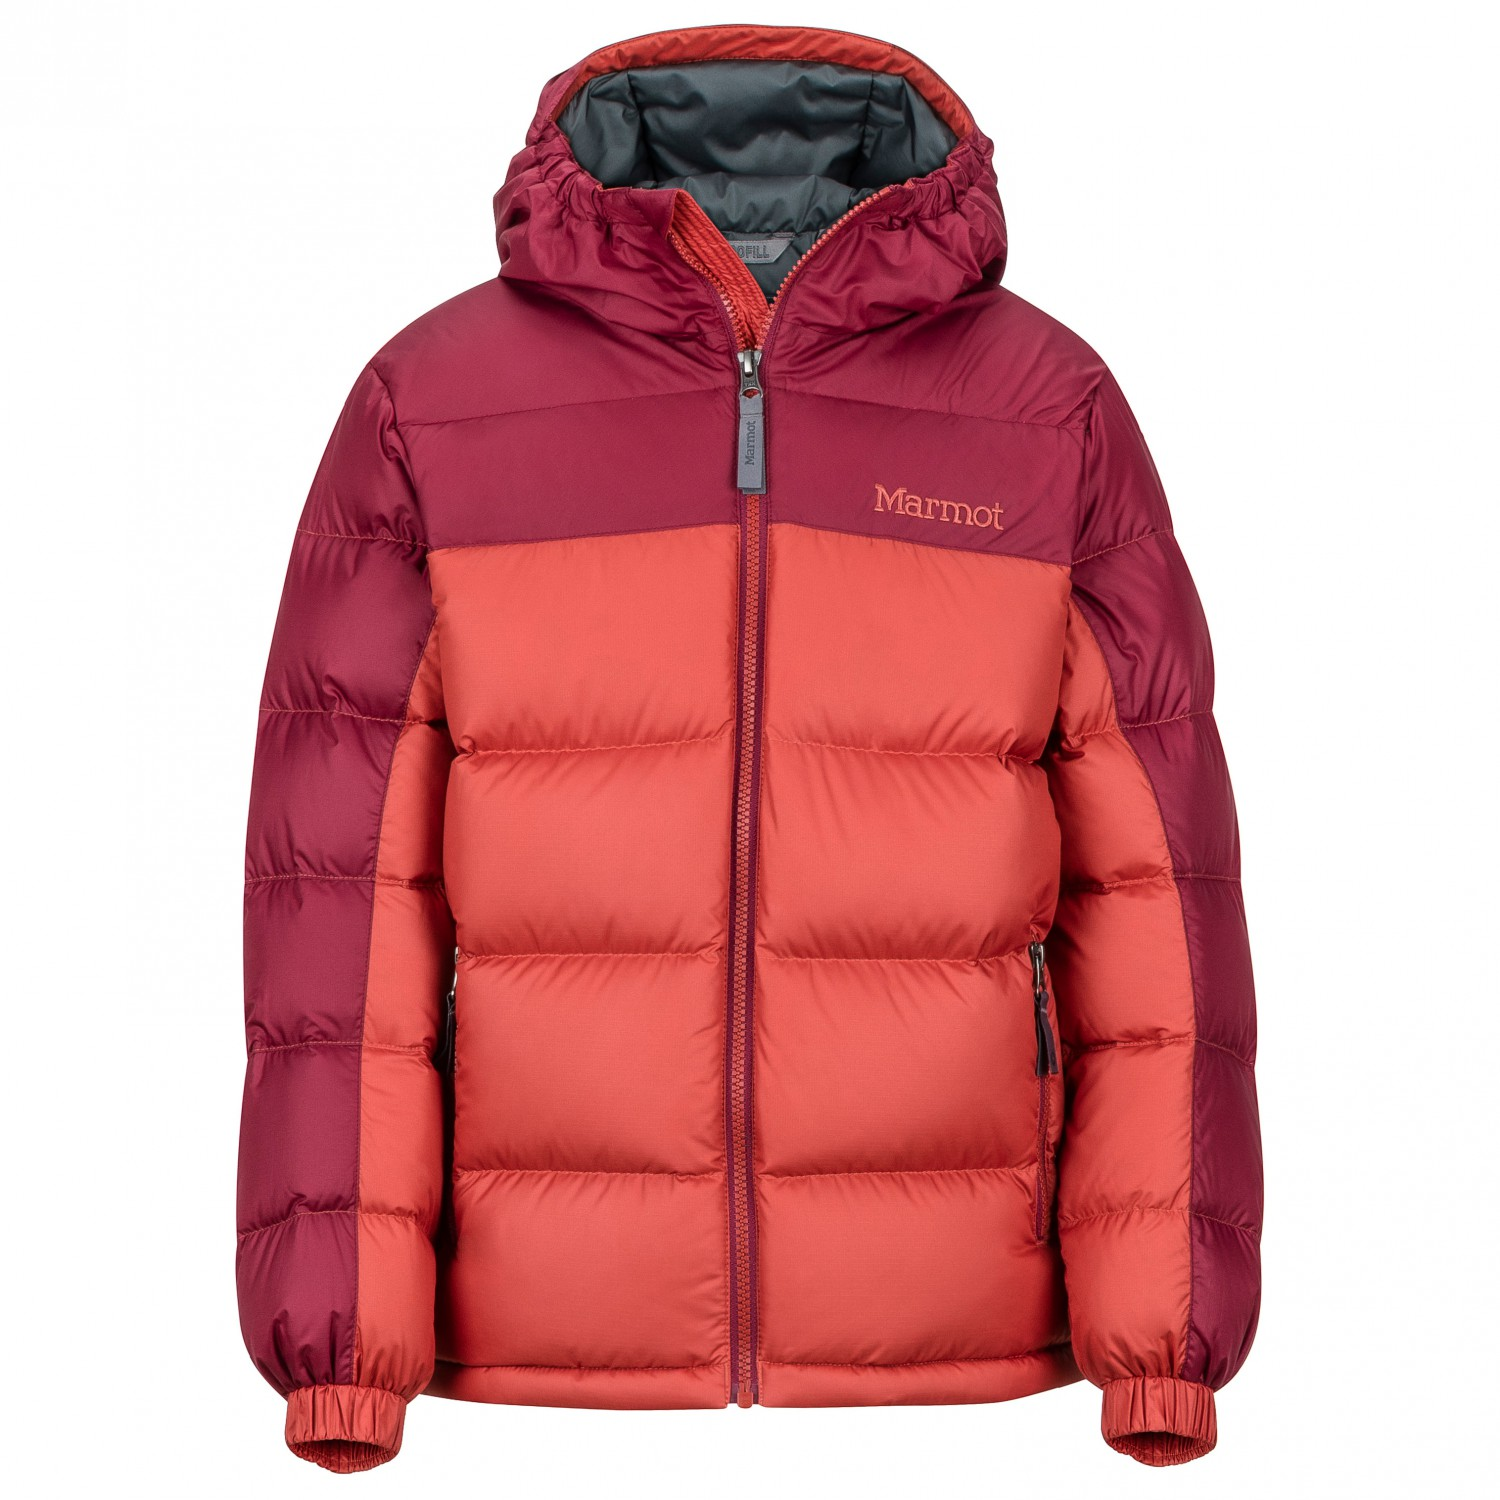 Marmot Childrens Guides Down Hoodie